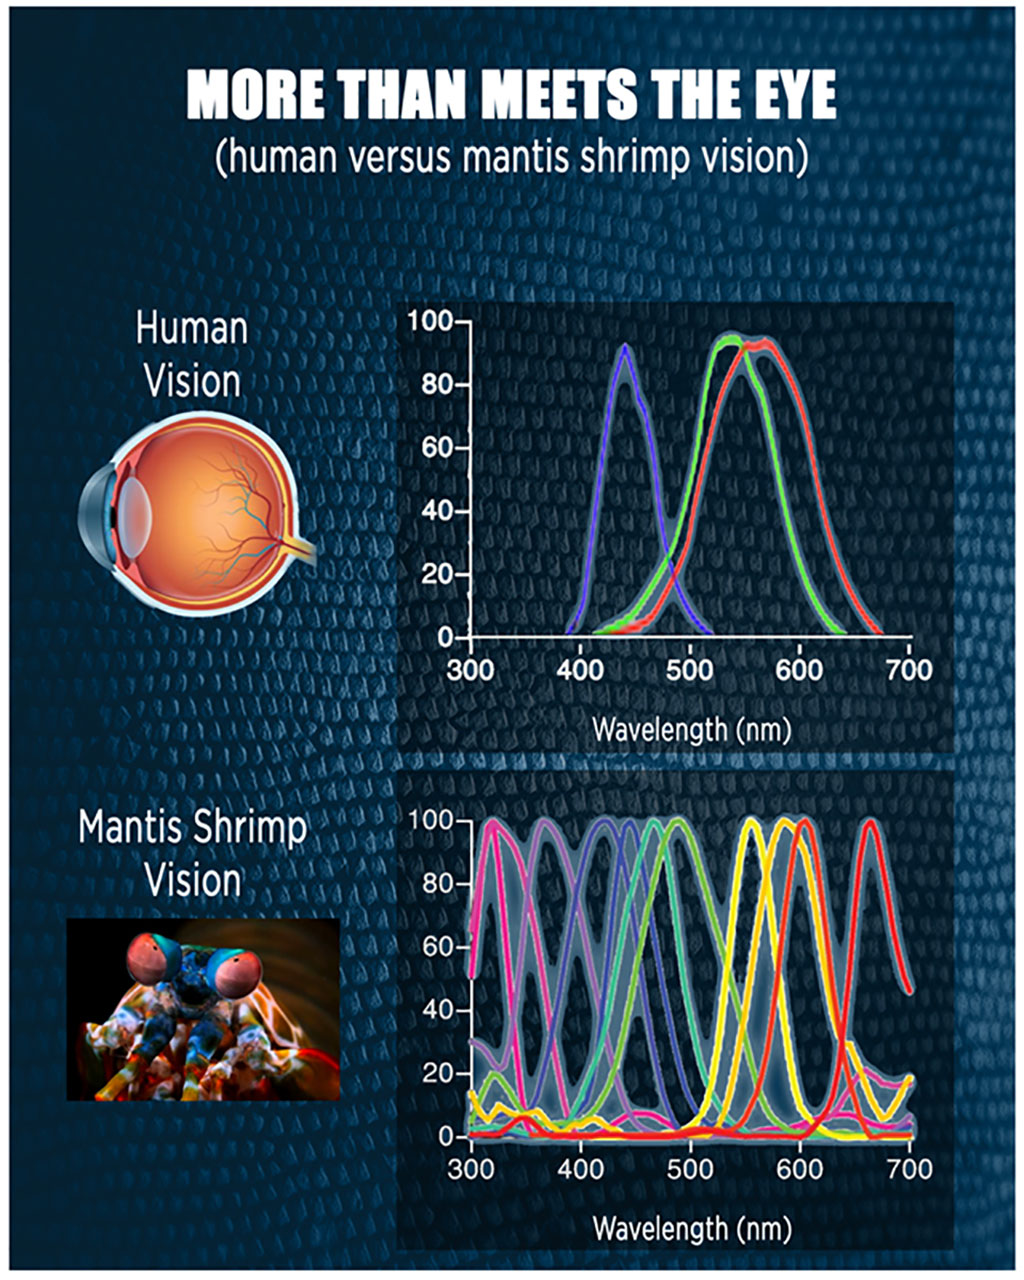 Image: Mantis shrimp can perceive a wider range of colors than humans (Photo courtesy of UIL)